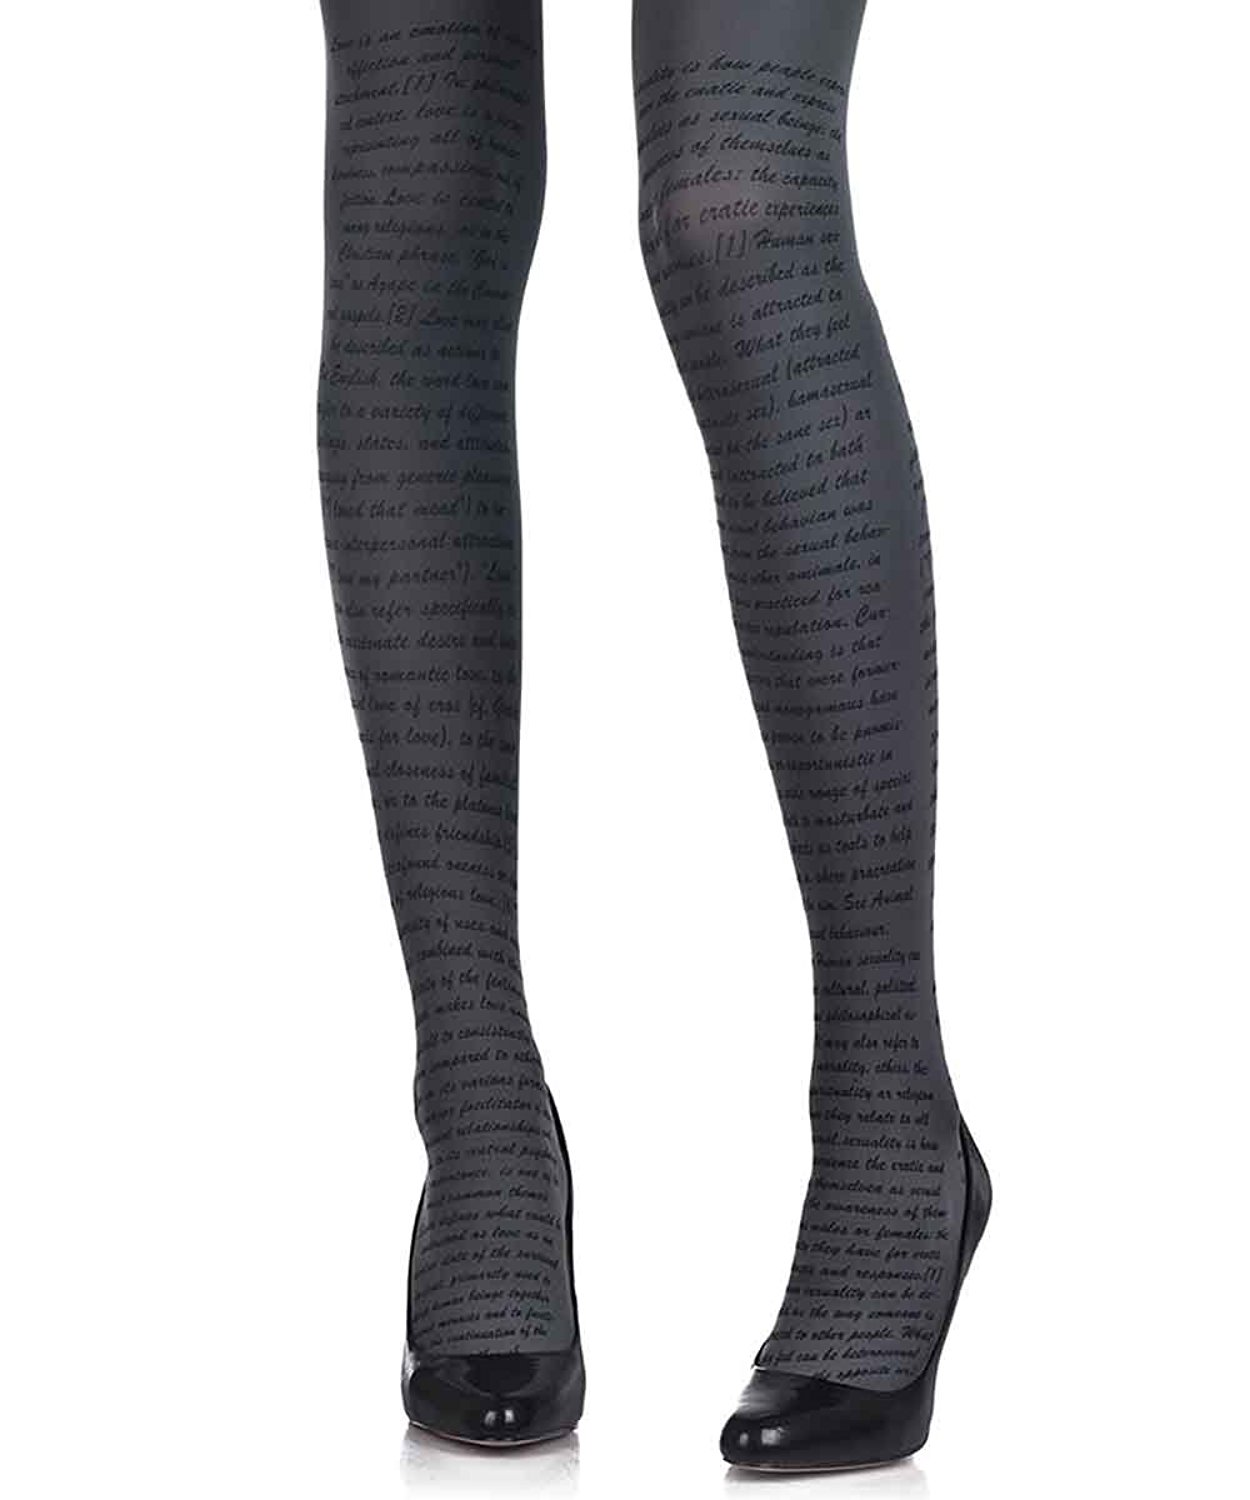 6d9cd1ead Get Quotations · Love Text Printed Tights for Women Grey Opaque 120 denier  by Zohara Tights